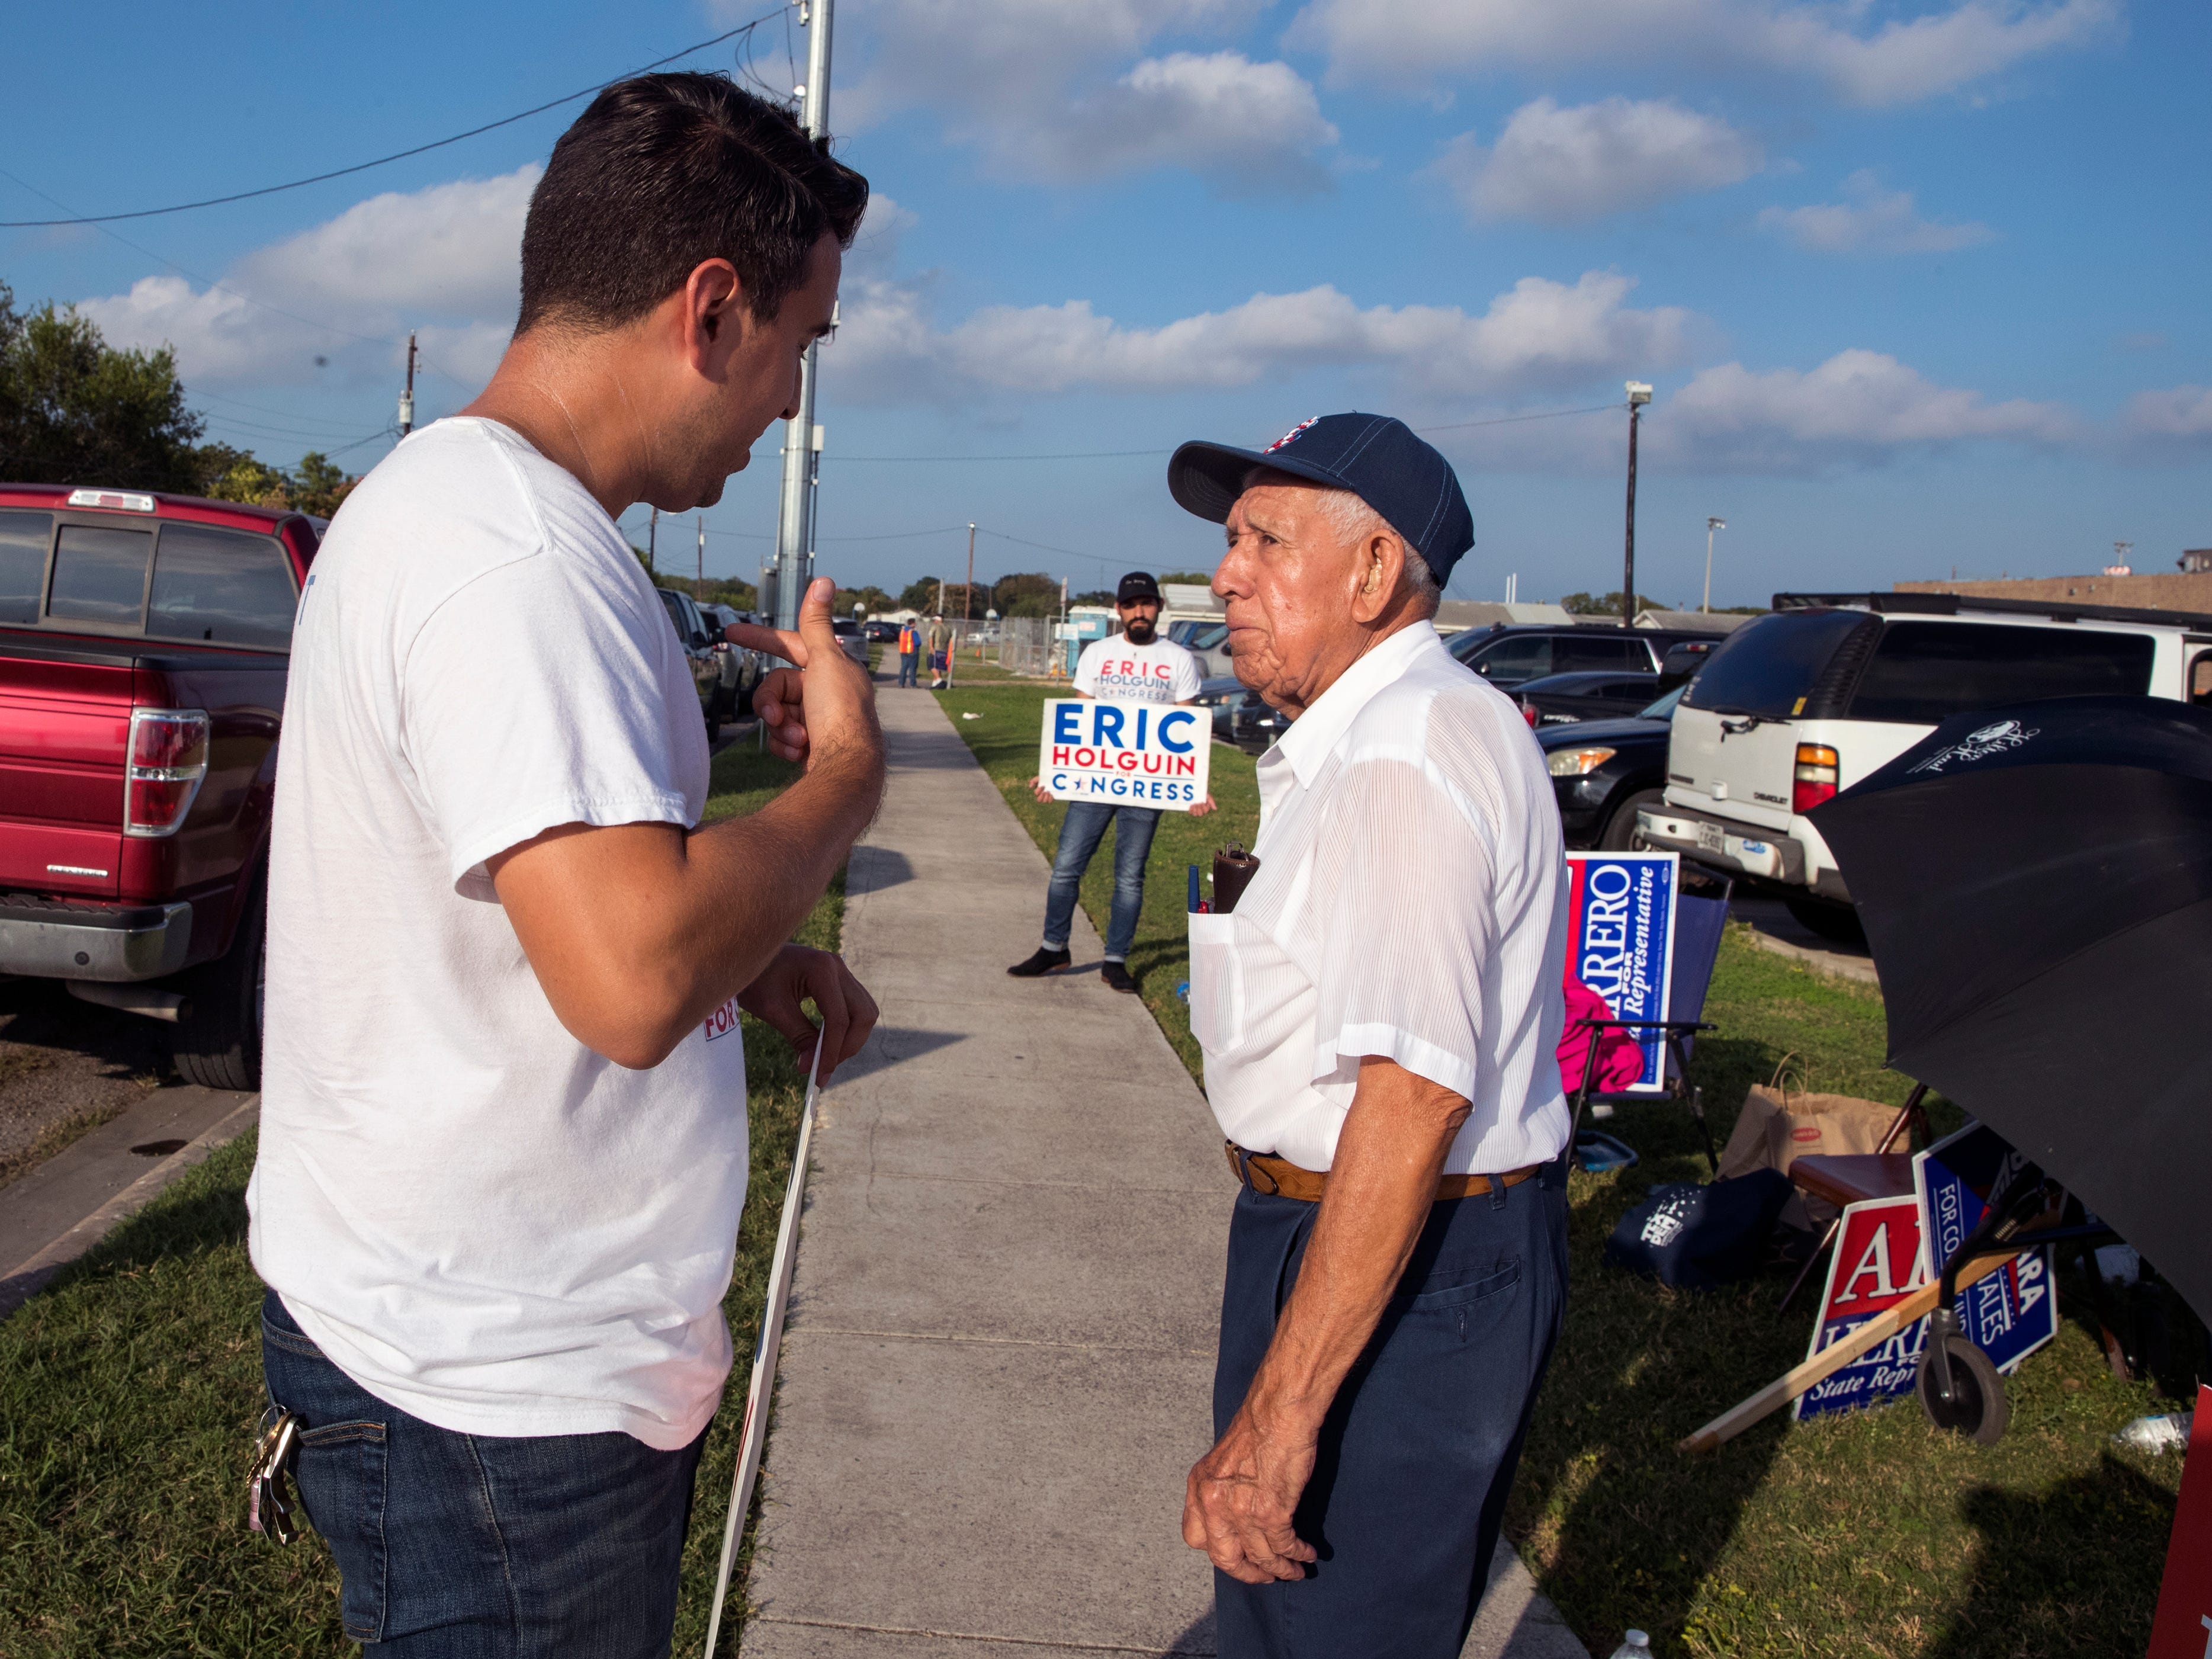 Eric Holguin (left), Democratic candidate for Texas' 27th Congressional District, talks with voter Frank Salazar outside Moody High School on Tuesday, November 6, 2018.